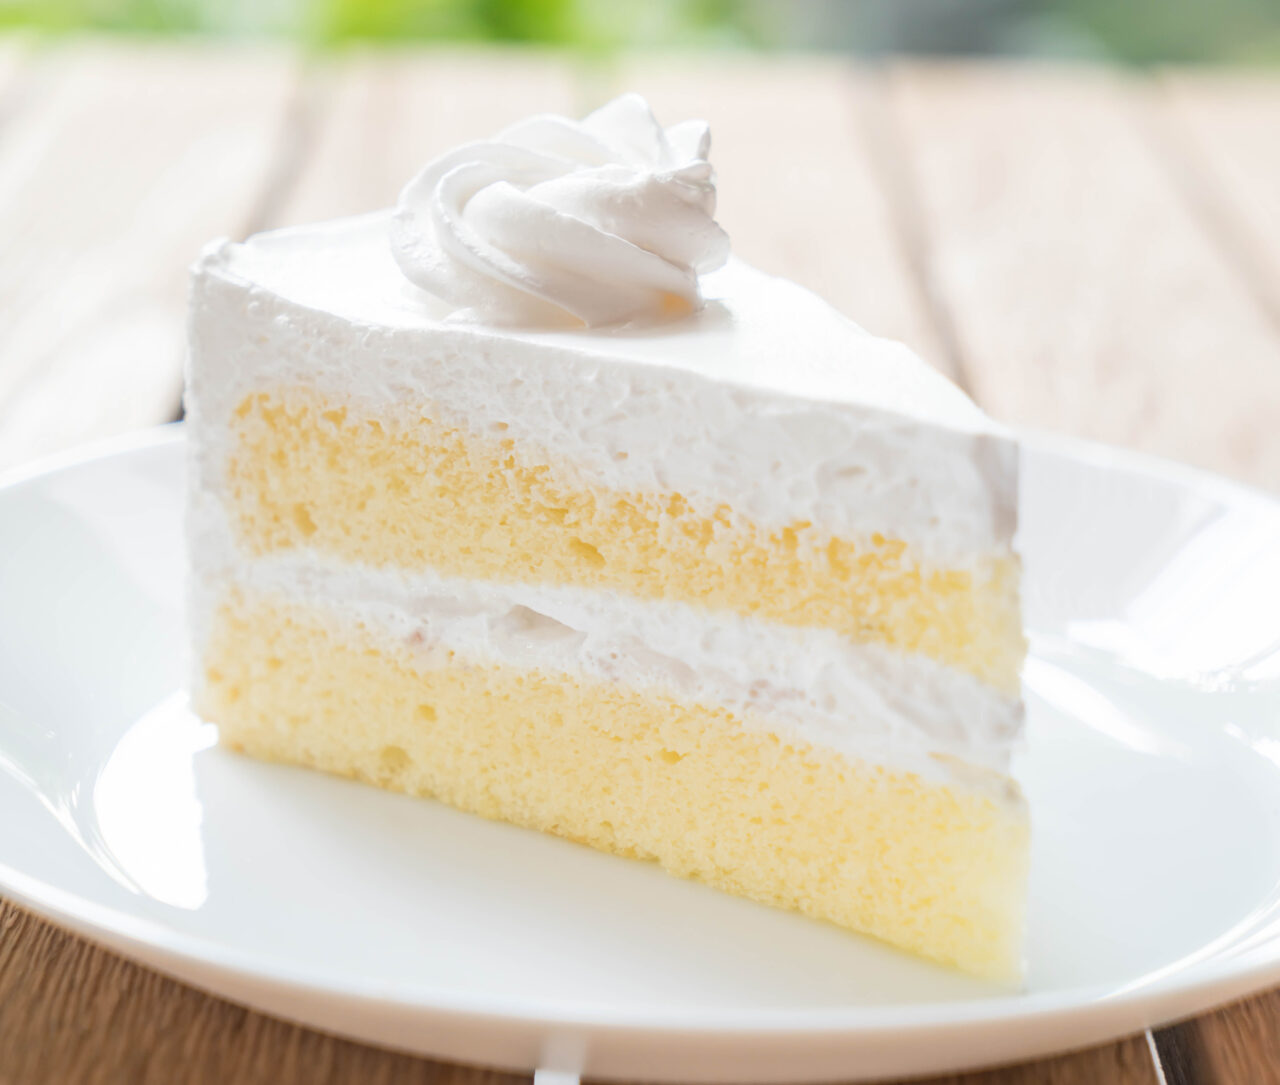 Keto Friendly Vanilla Cake with Scrumptious Butter Cream Frosting